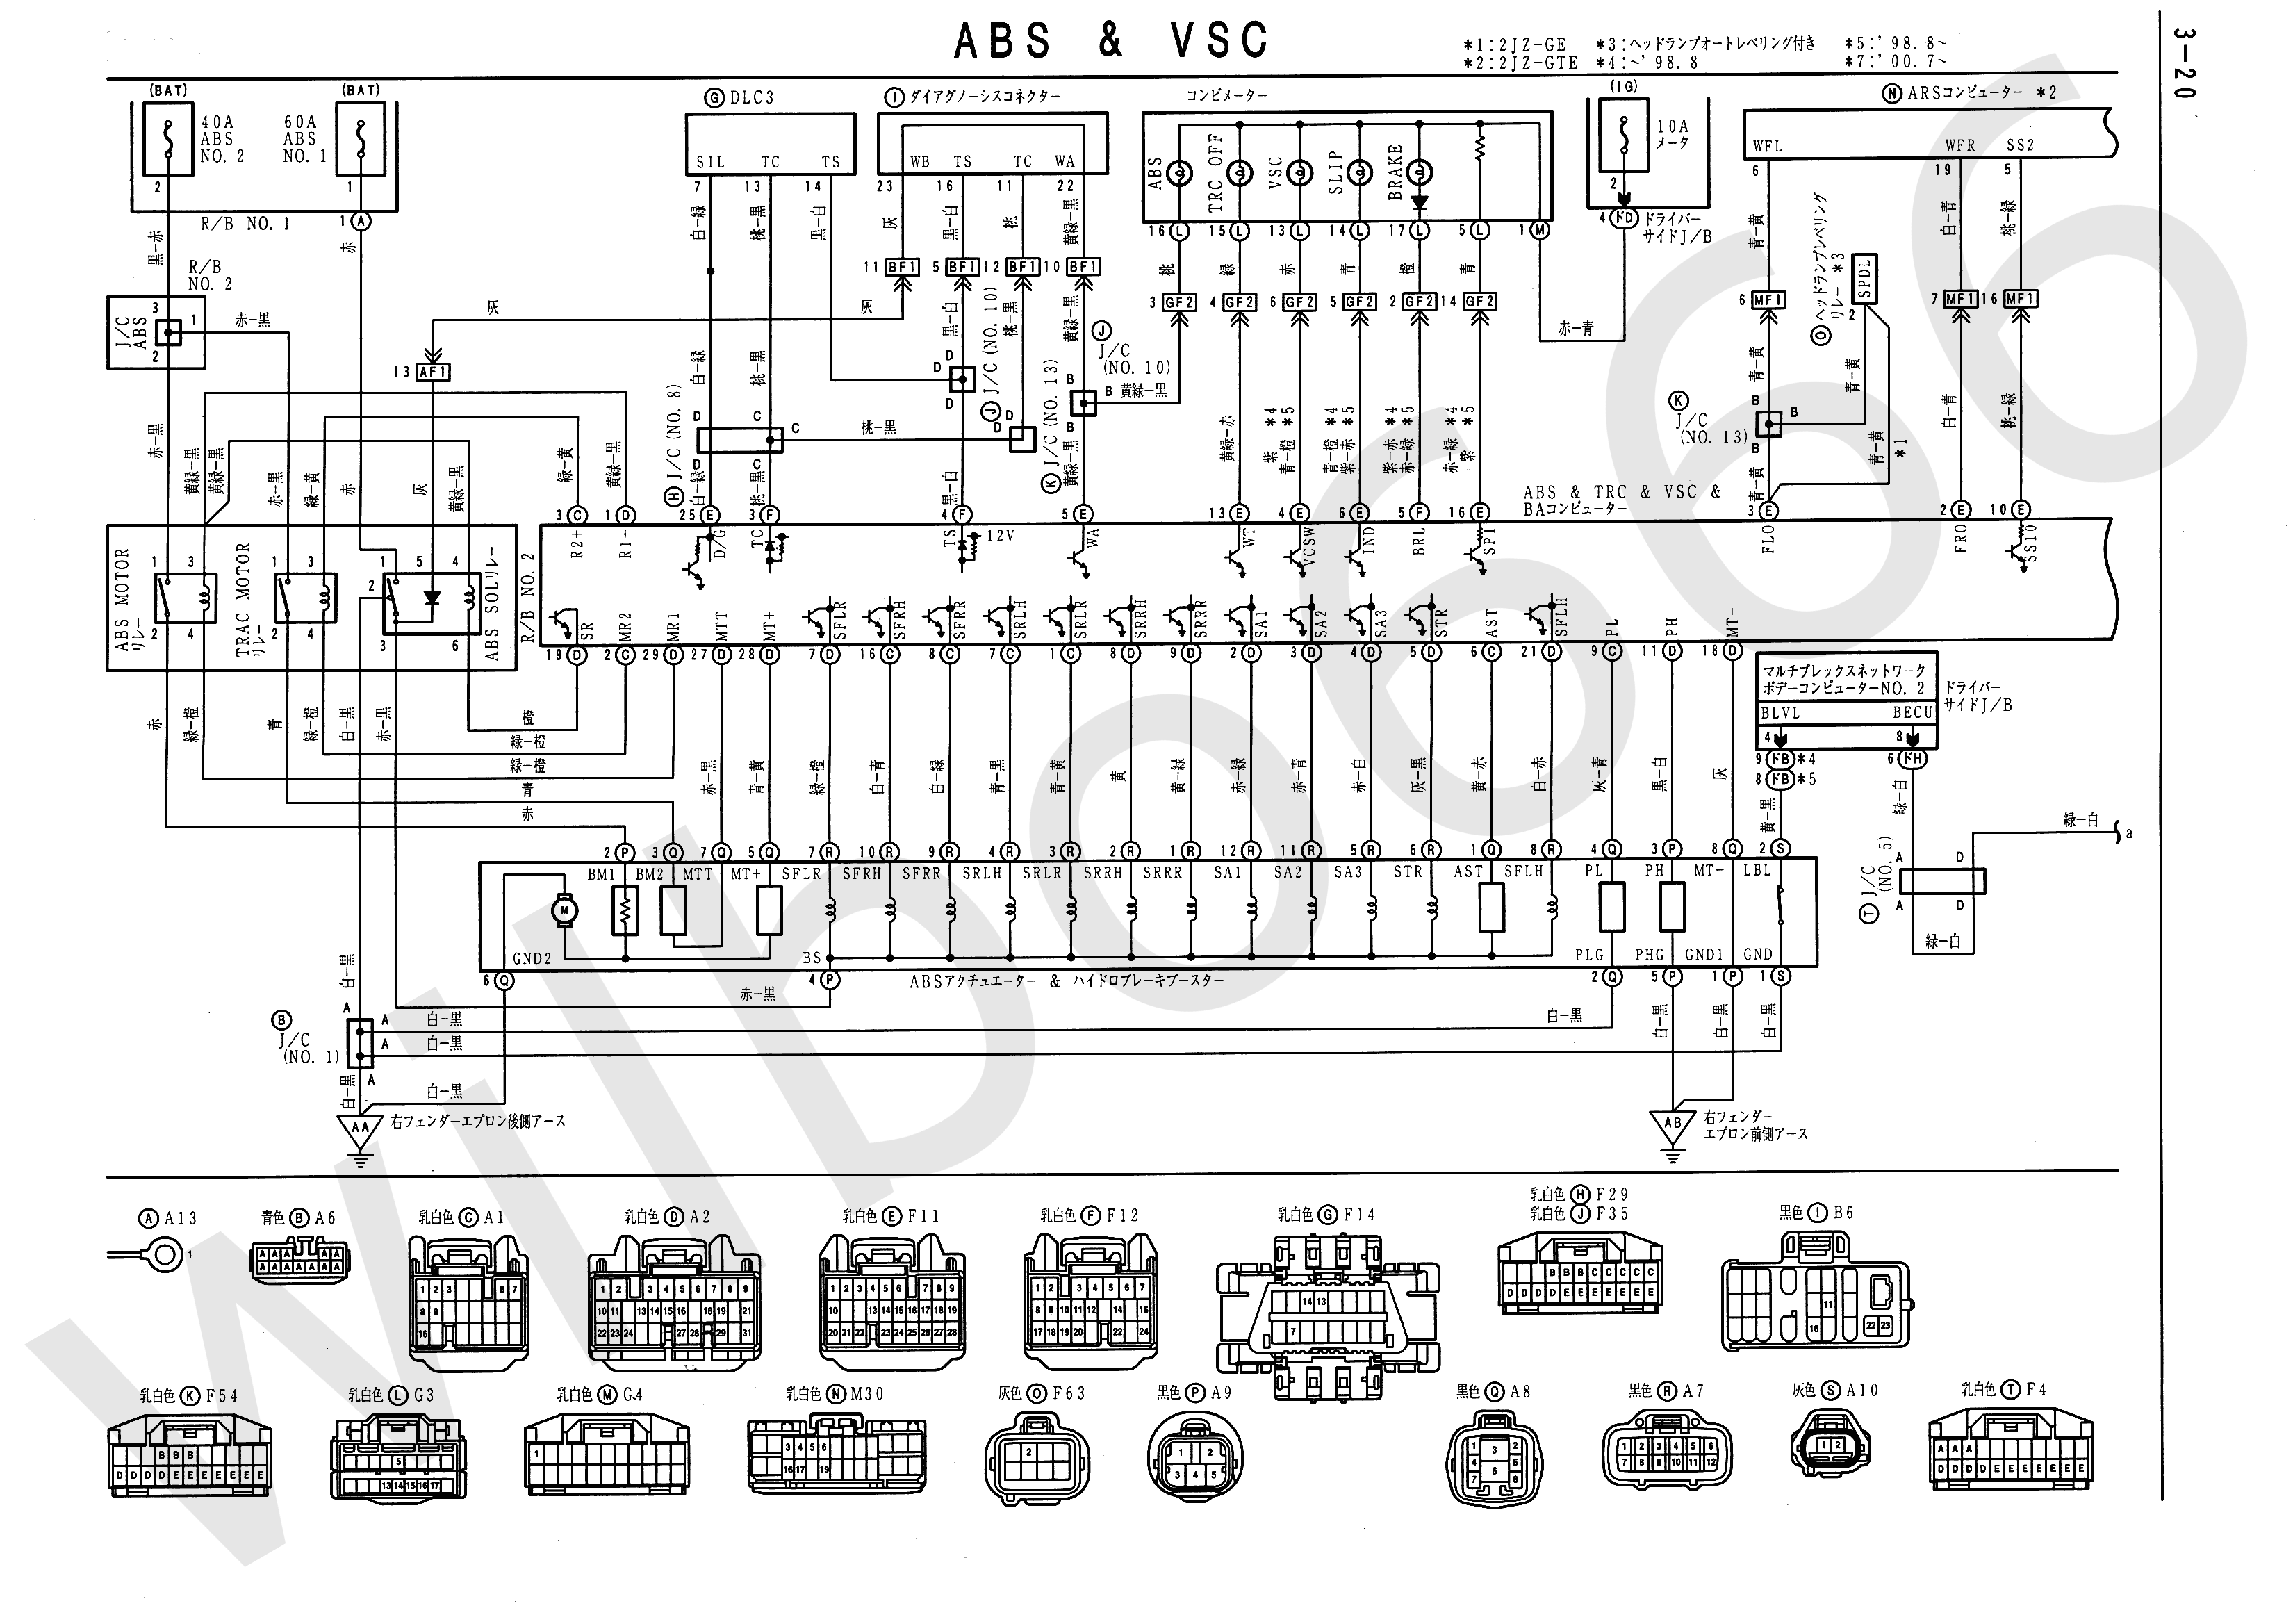 JZS161 Electrical Wiring Diagram 6748505 3 20 wilbo666 2jz gte vvti jzs161 aristo engine wiring 1jz vvti wiring diagram pdf at couponss.co